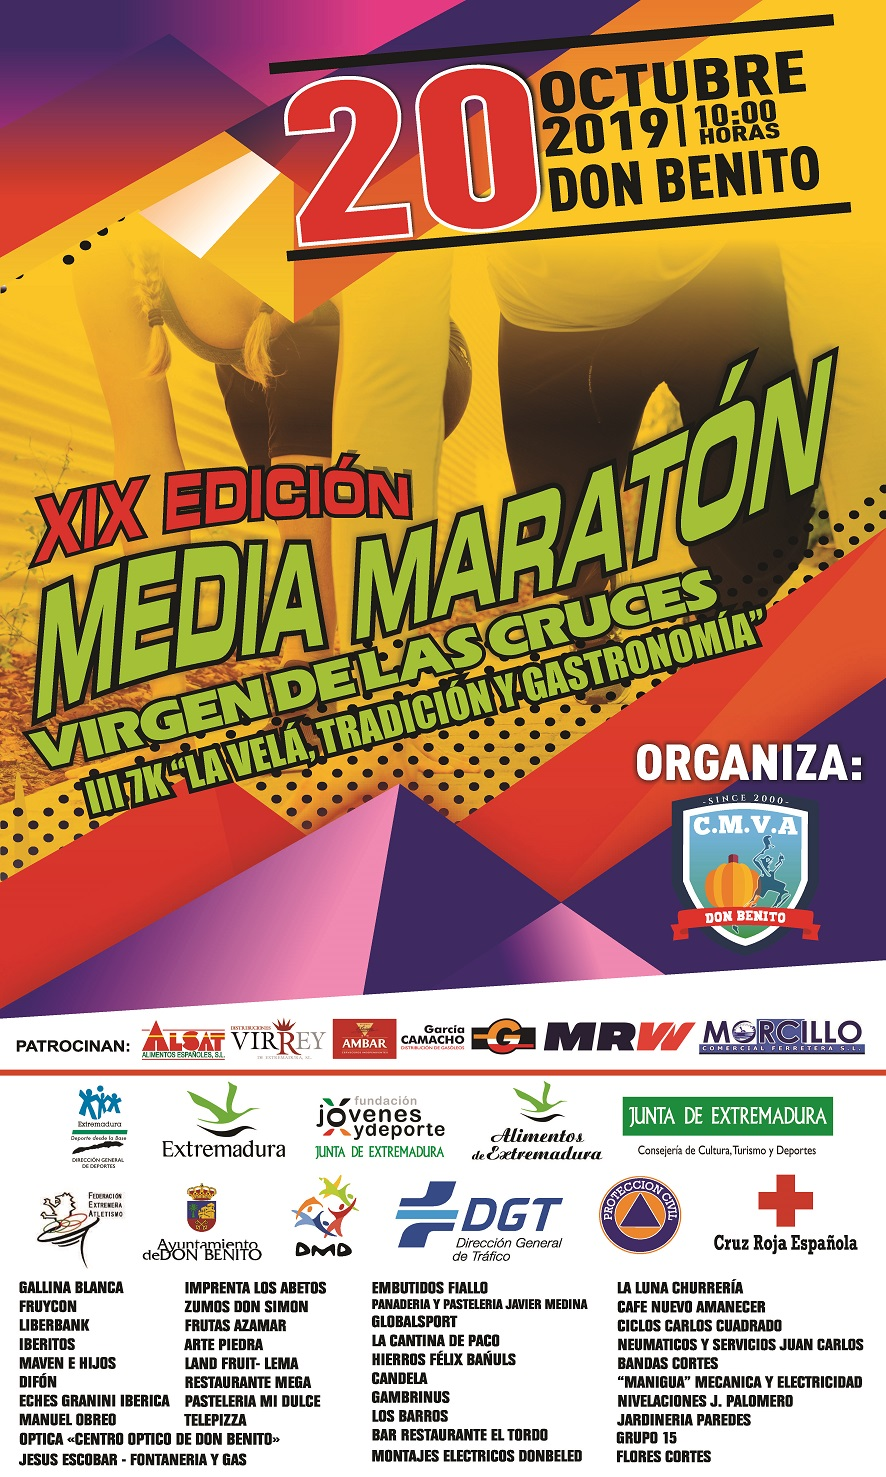 XIX Media Maraton Virgen de las Cruces EQUIPOS